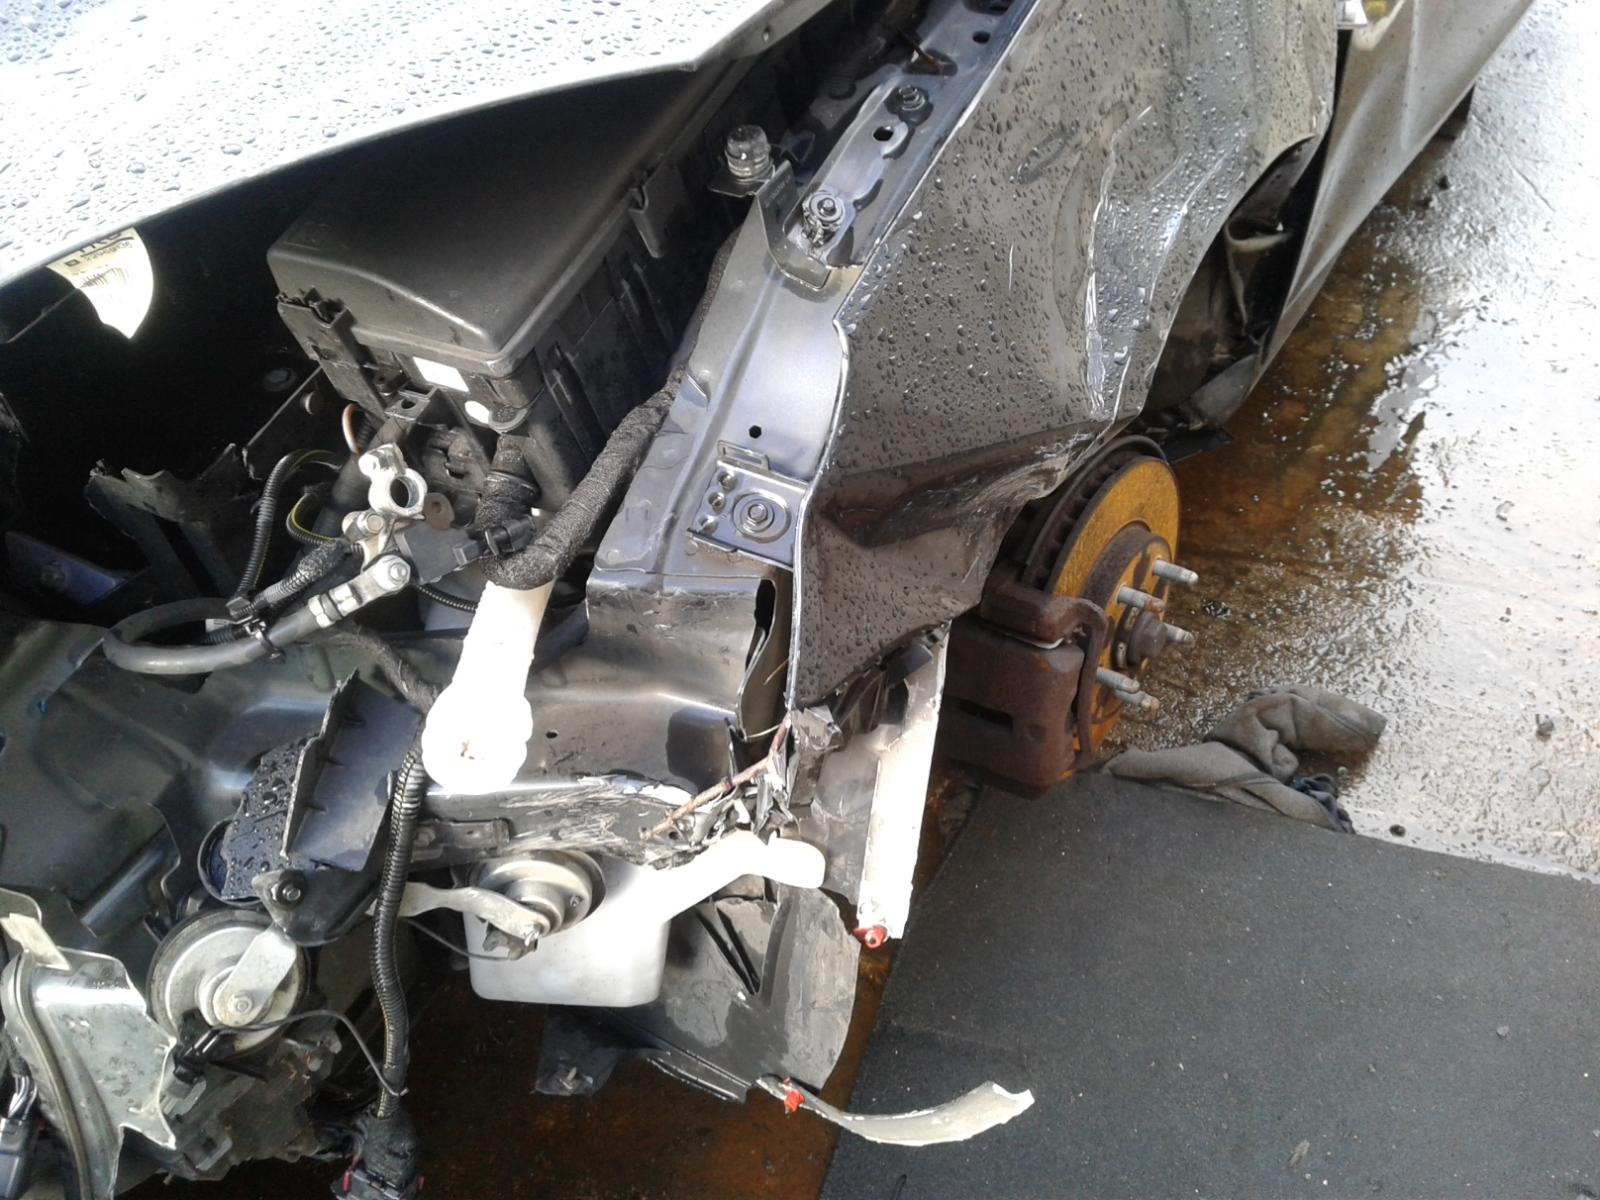 View Auto part VAUXHALL INSIGNIA 2013 5 Door Hatchback